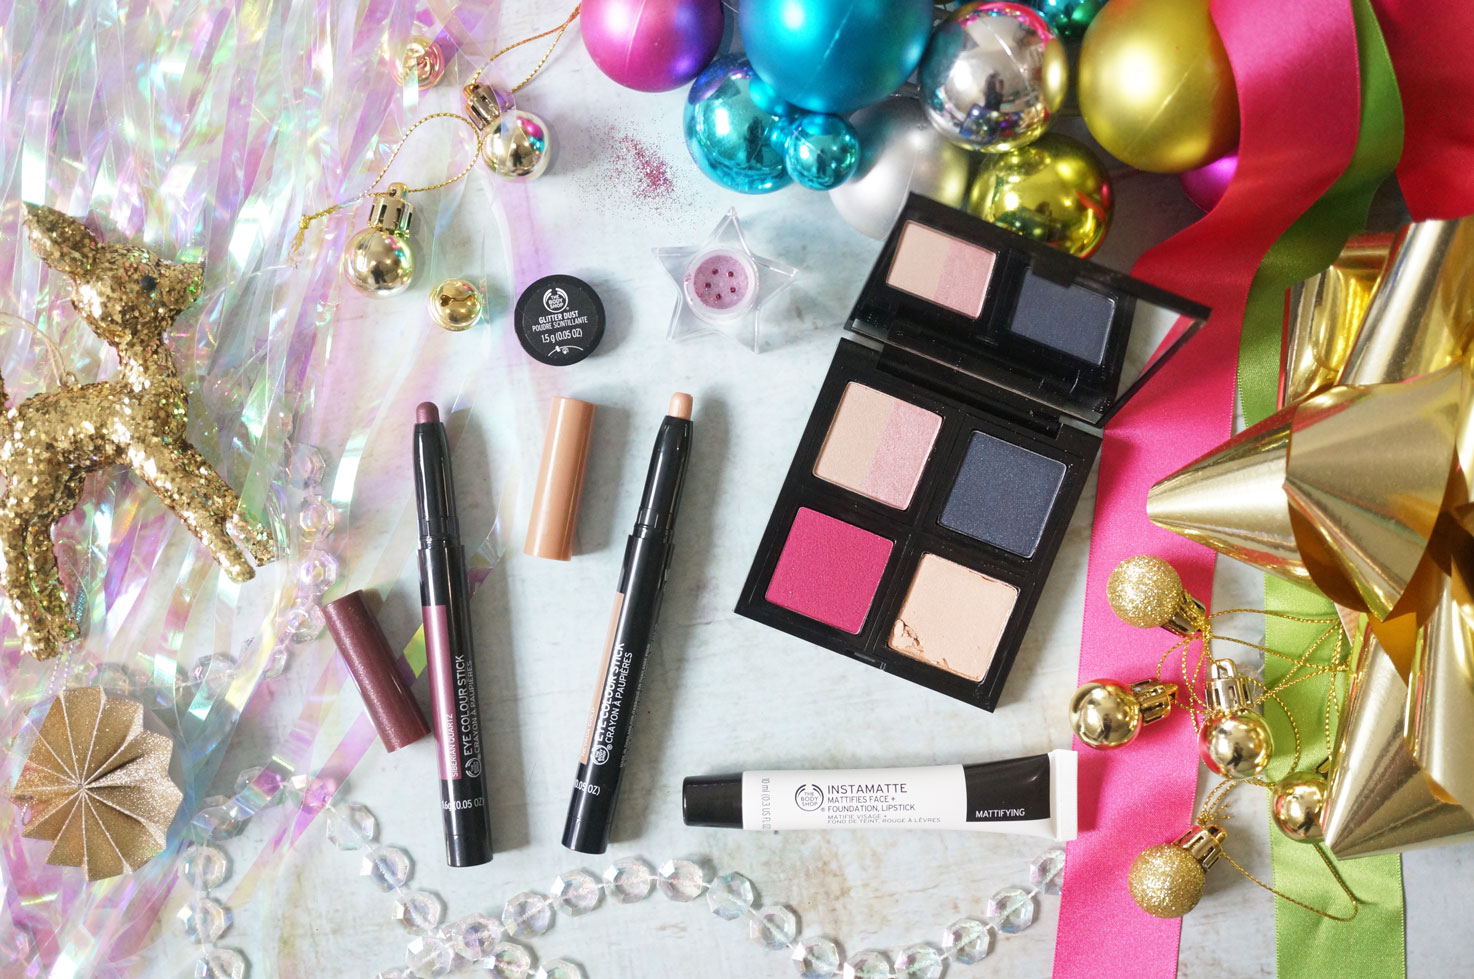 Festive Beauty With The Body Shop